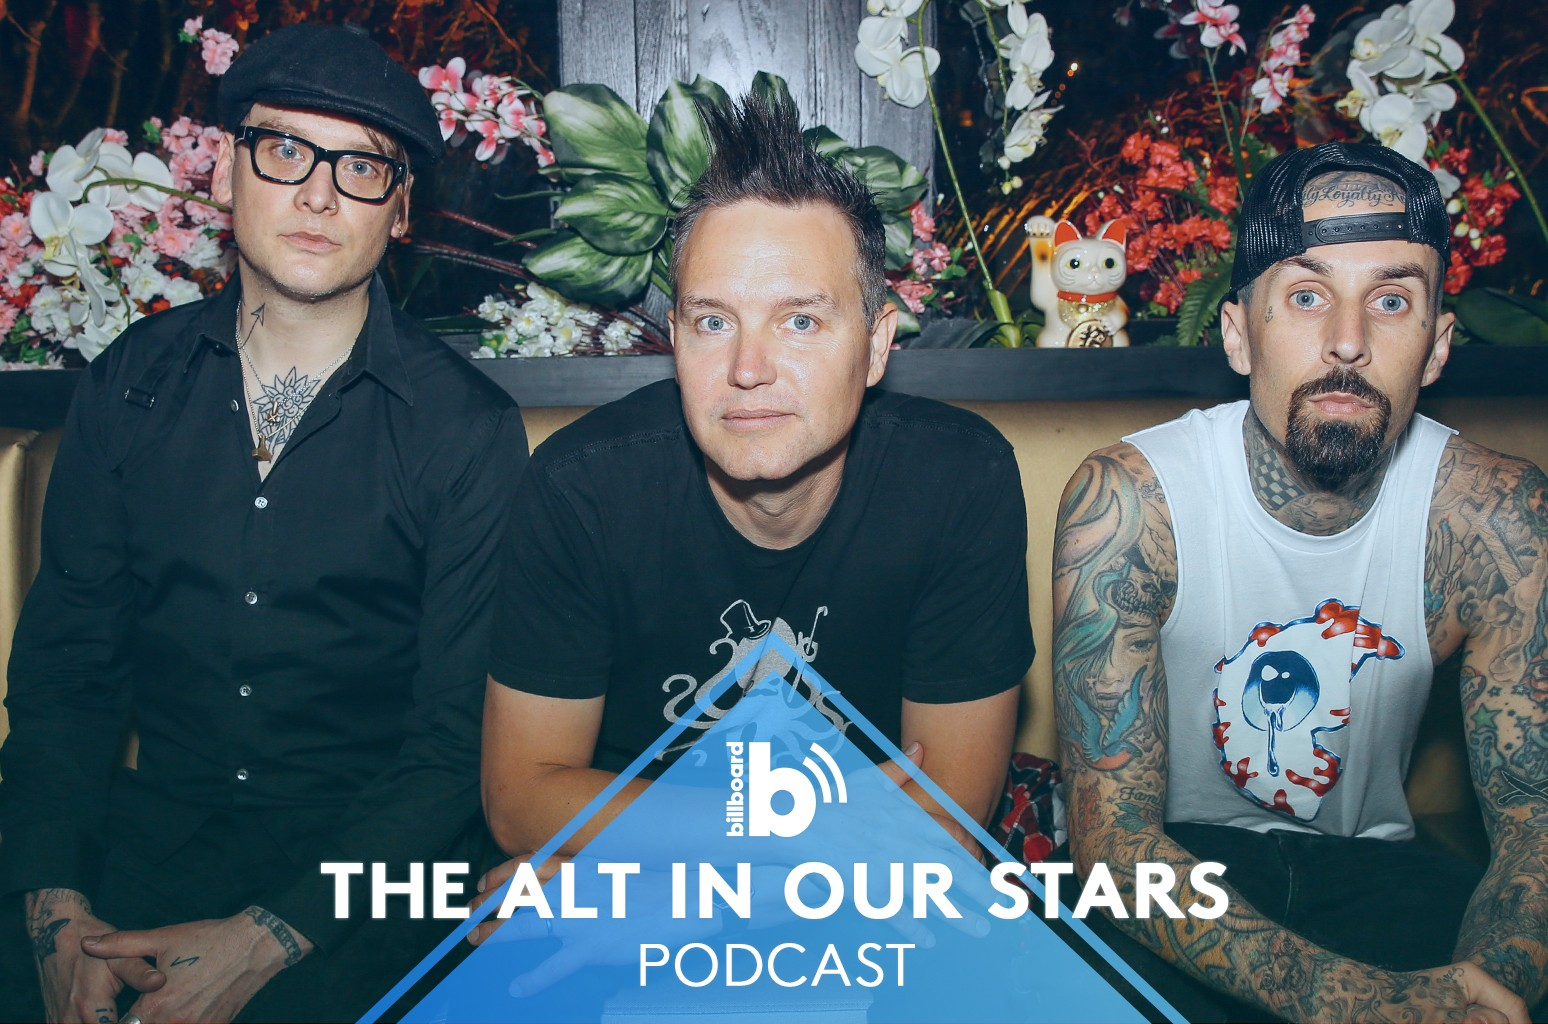 The Alt in Our Stars Podcast featuring: blink 182